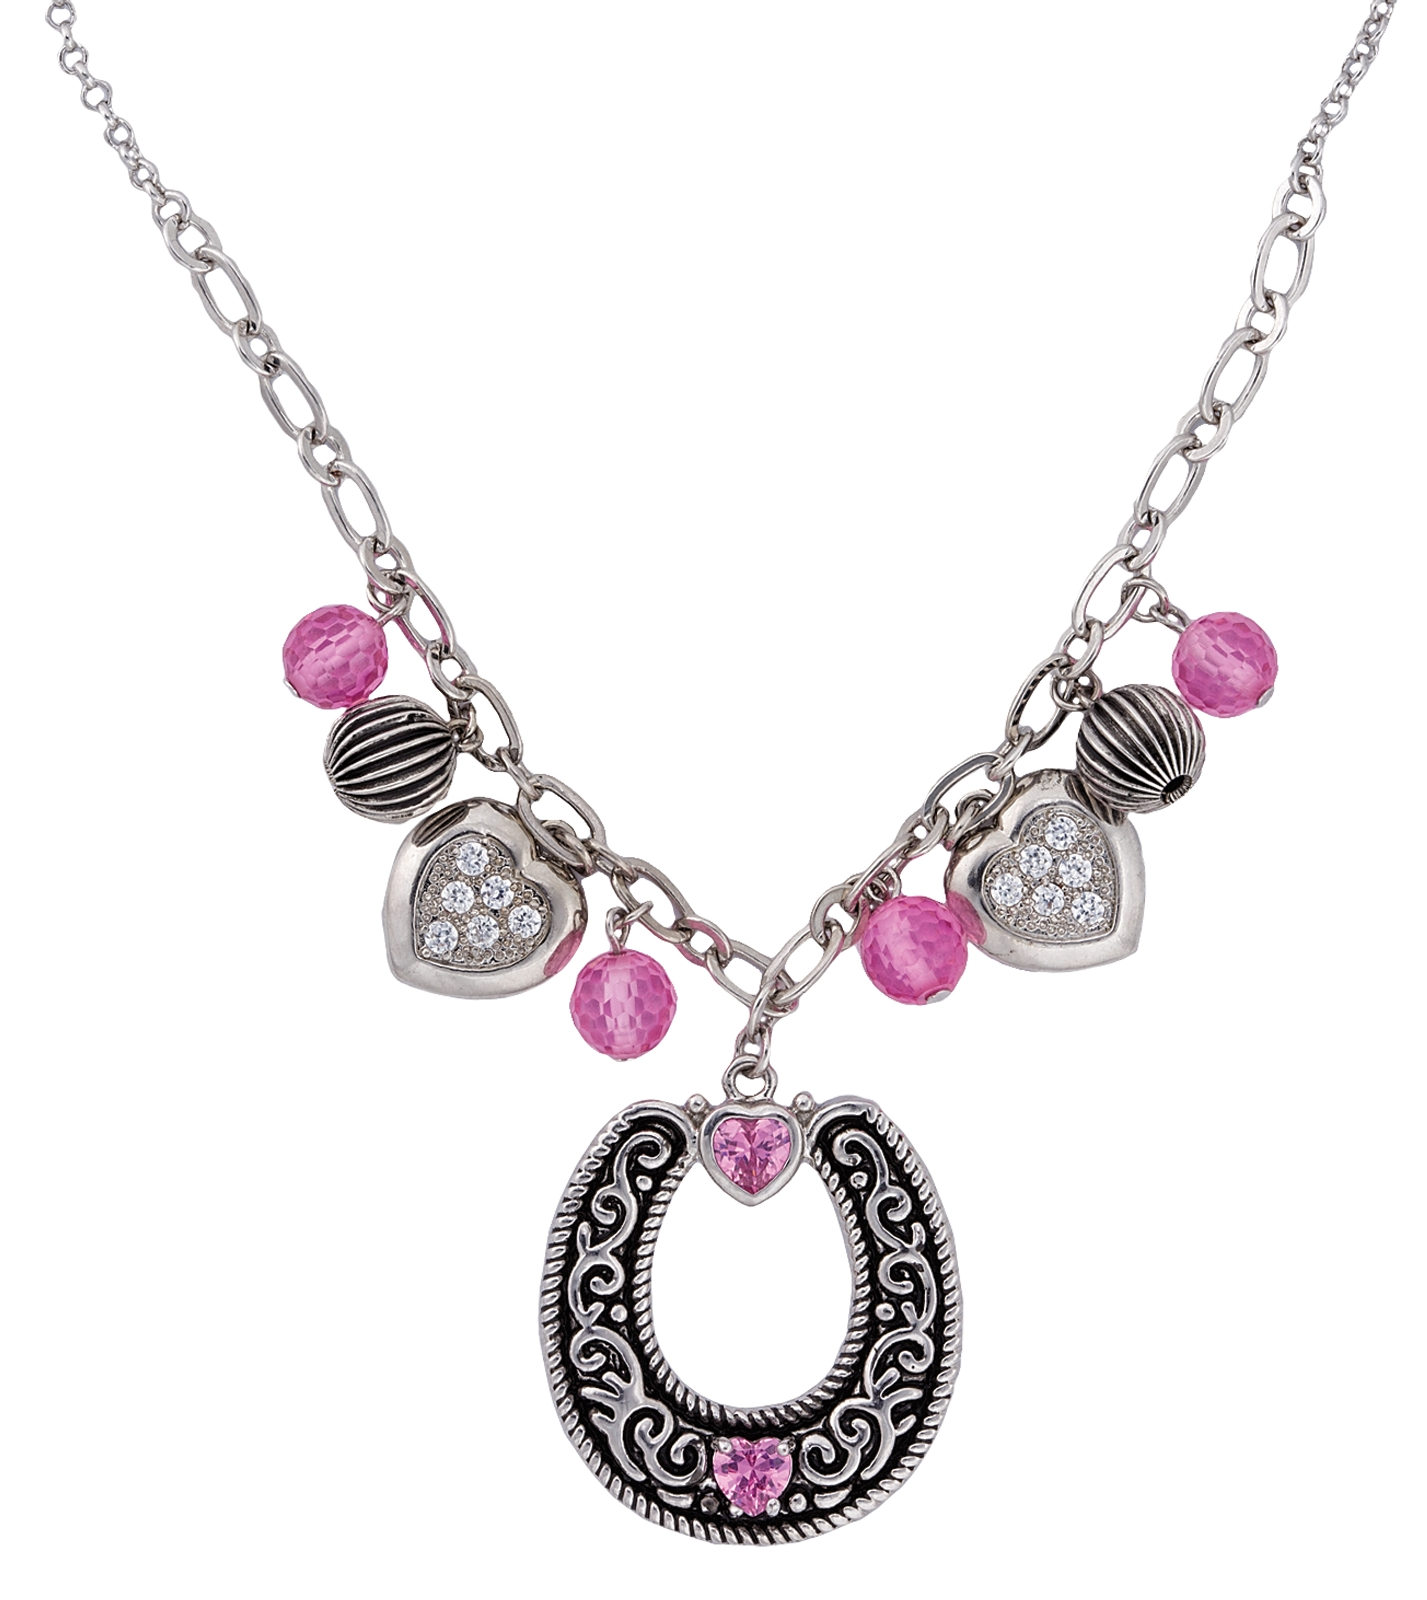 Montana Silversmiths Charmed Cowgirl Pink Horseshoe Necklace